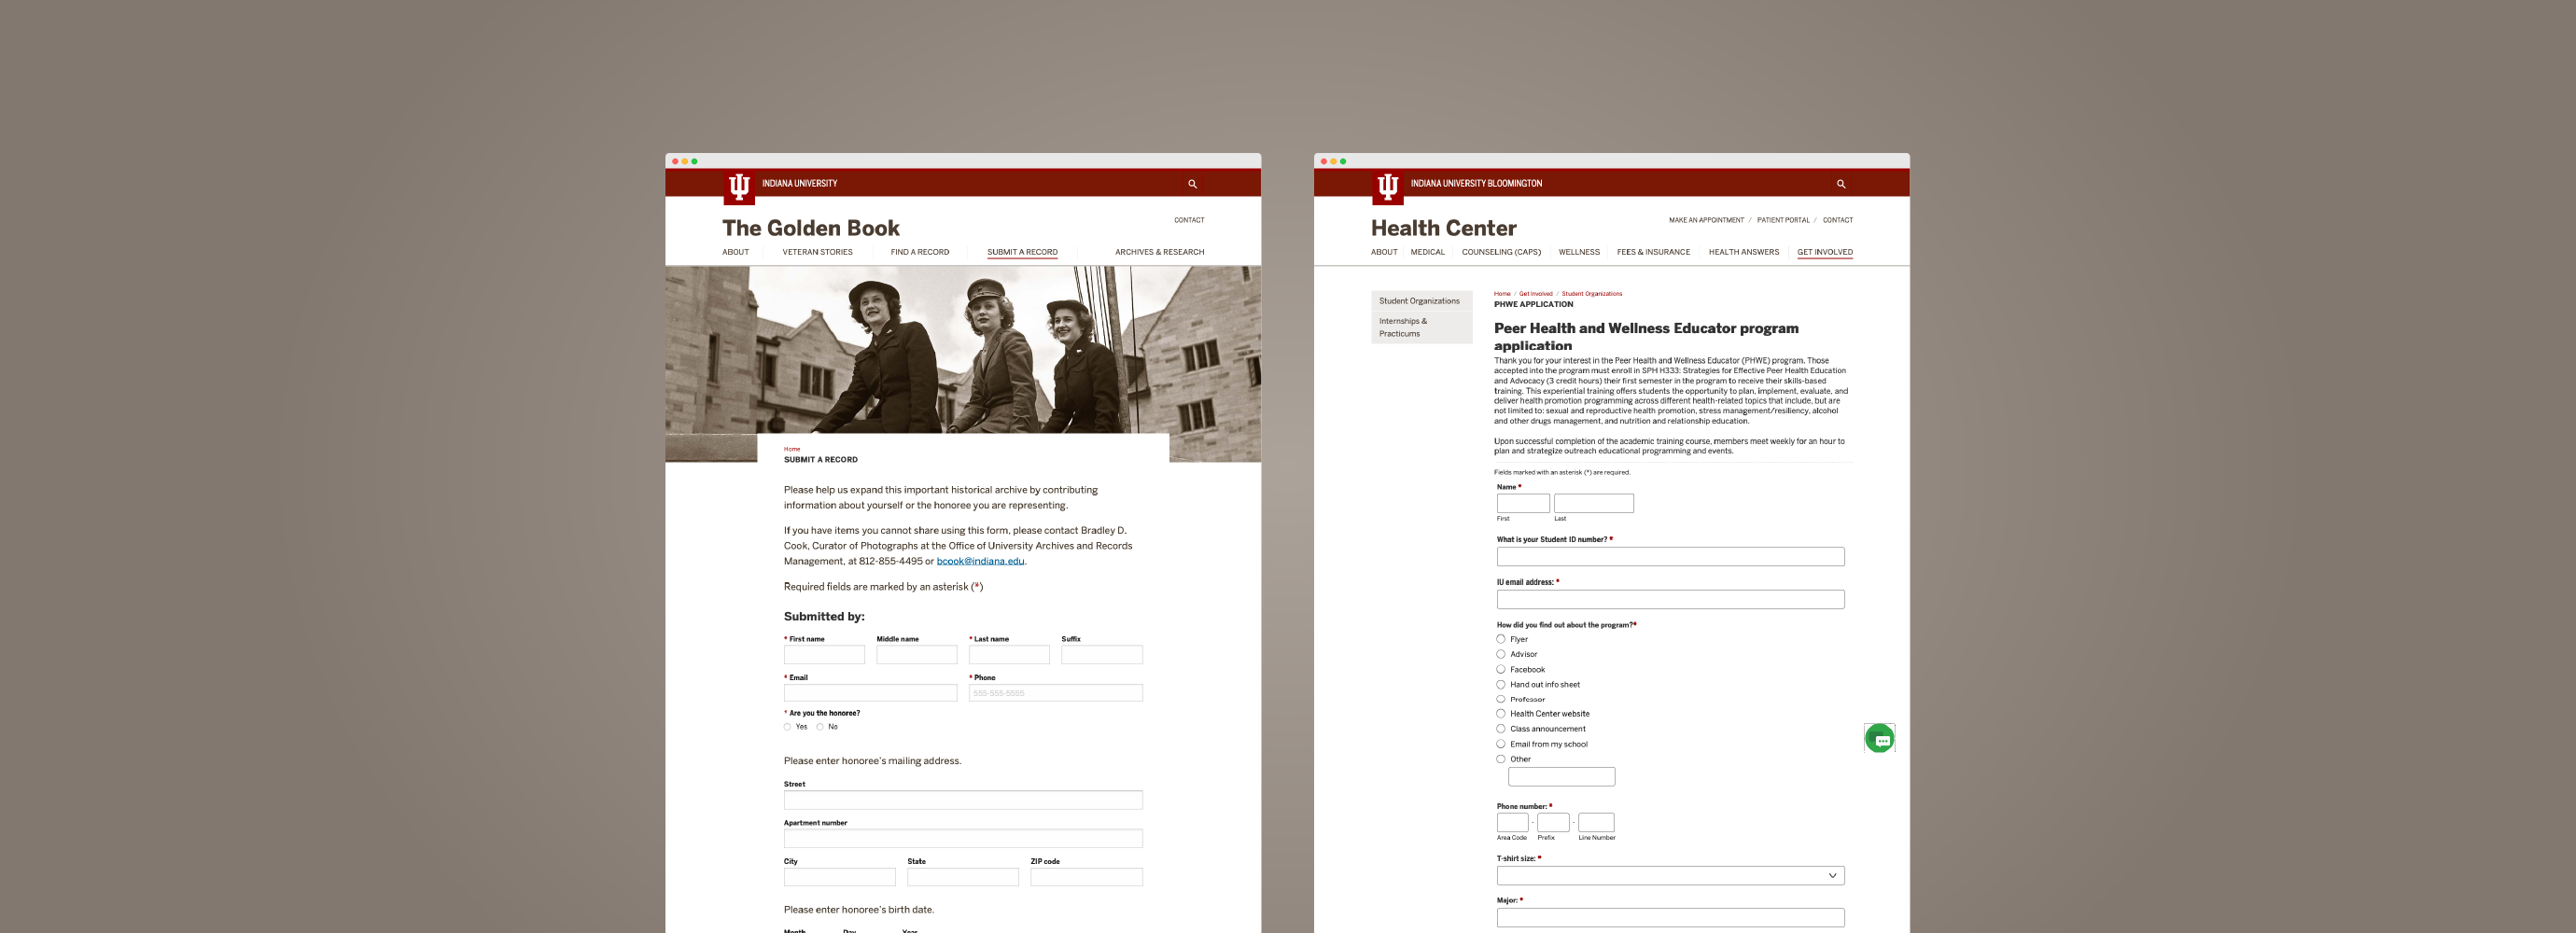 Two website page examples using MachForm